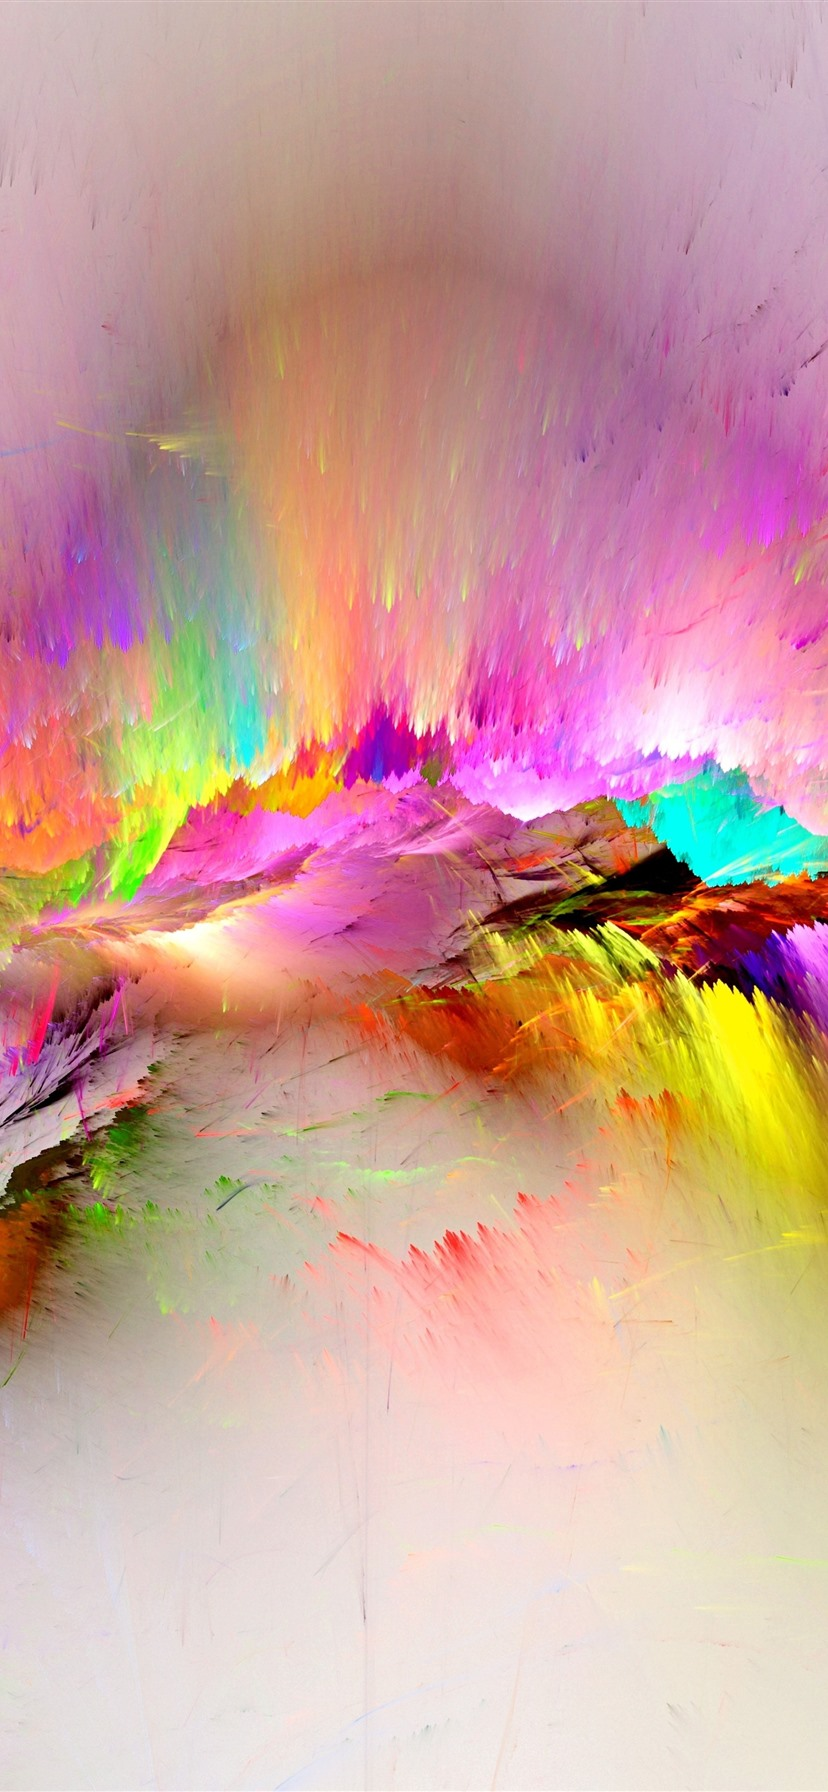 Wallpaper Colorful Paint Rainbow Abstract 3840x2160 Uhd 4k Picture Image